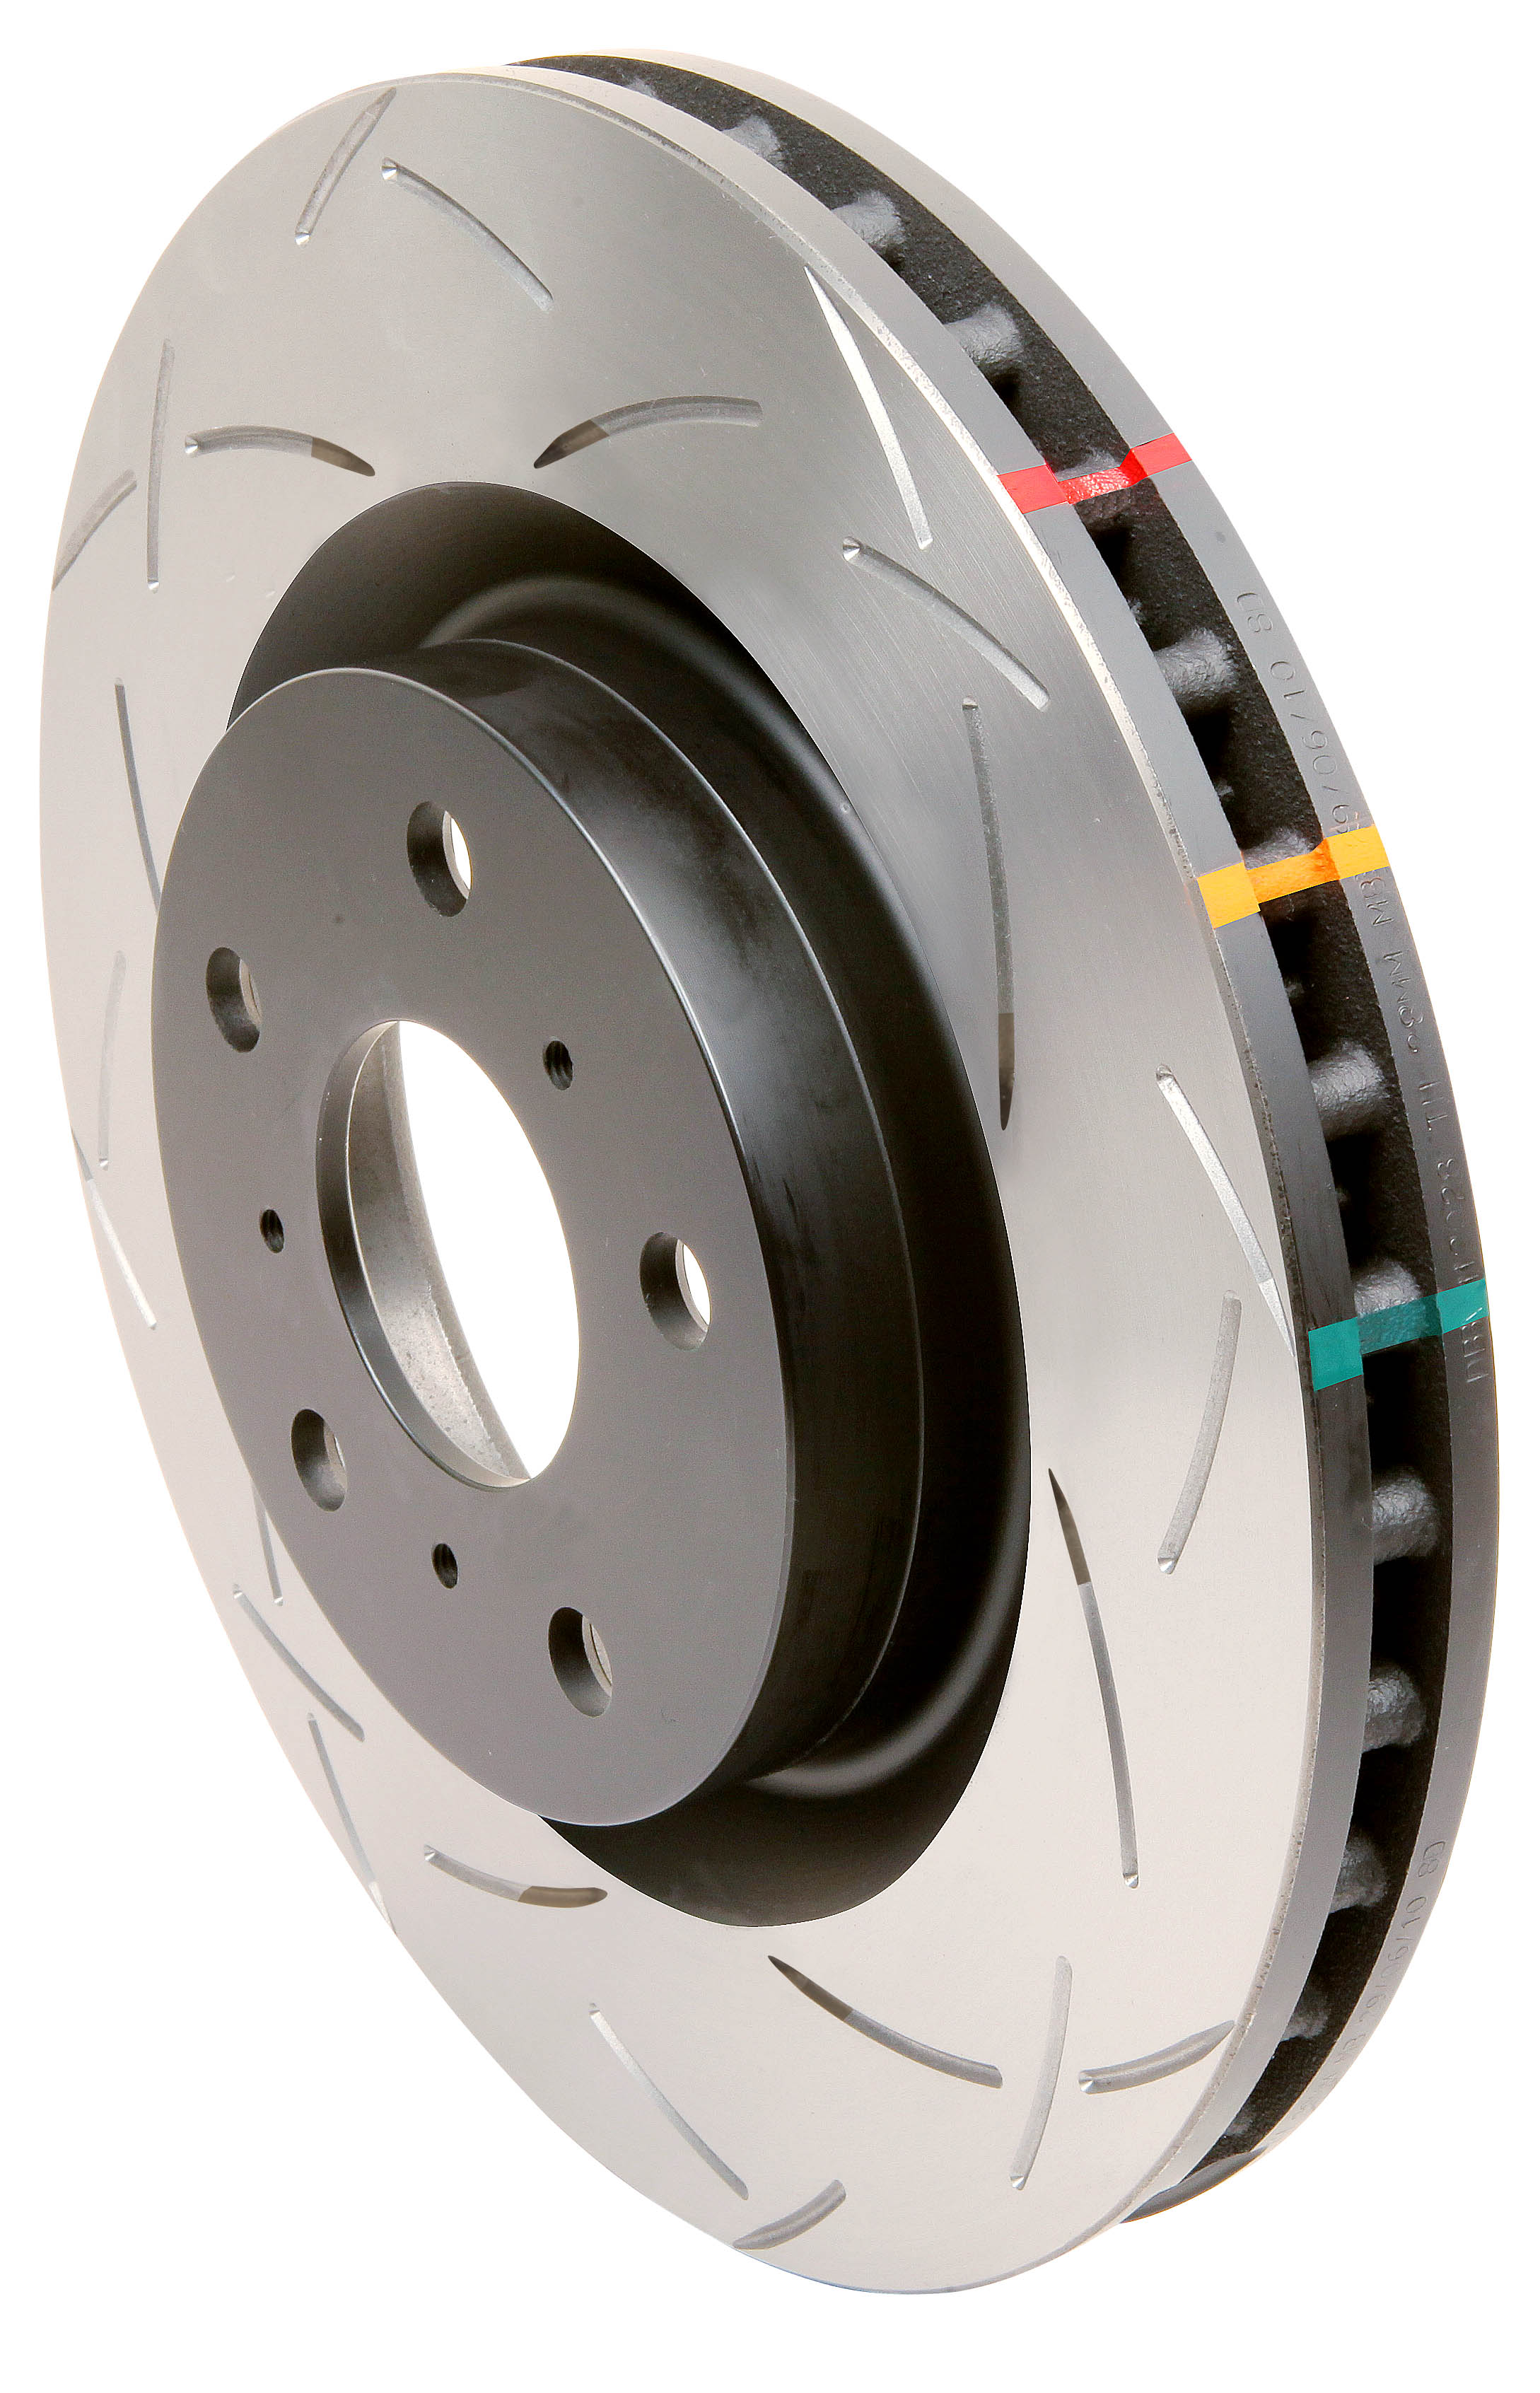 DBA T3 4000 Series - T-Slot Uni-Directional Slotted Rotor - DBA 42445S